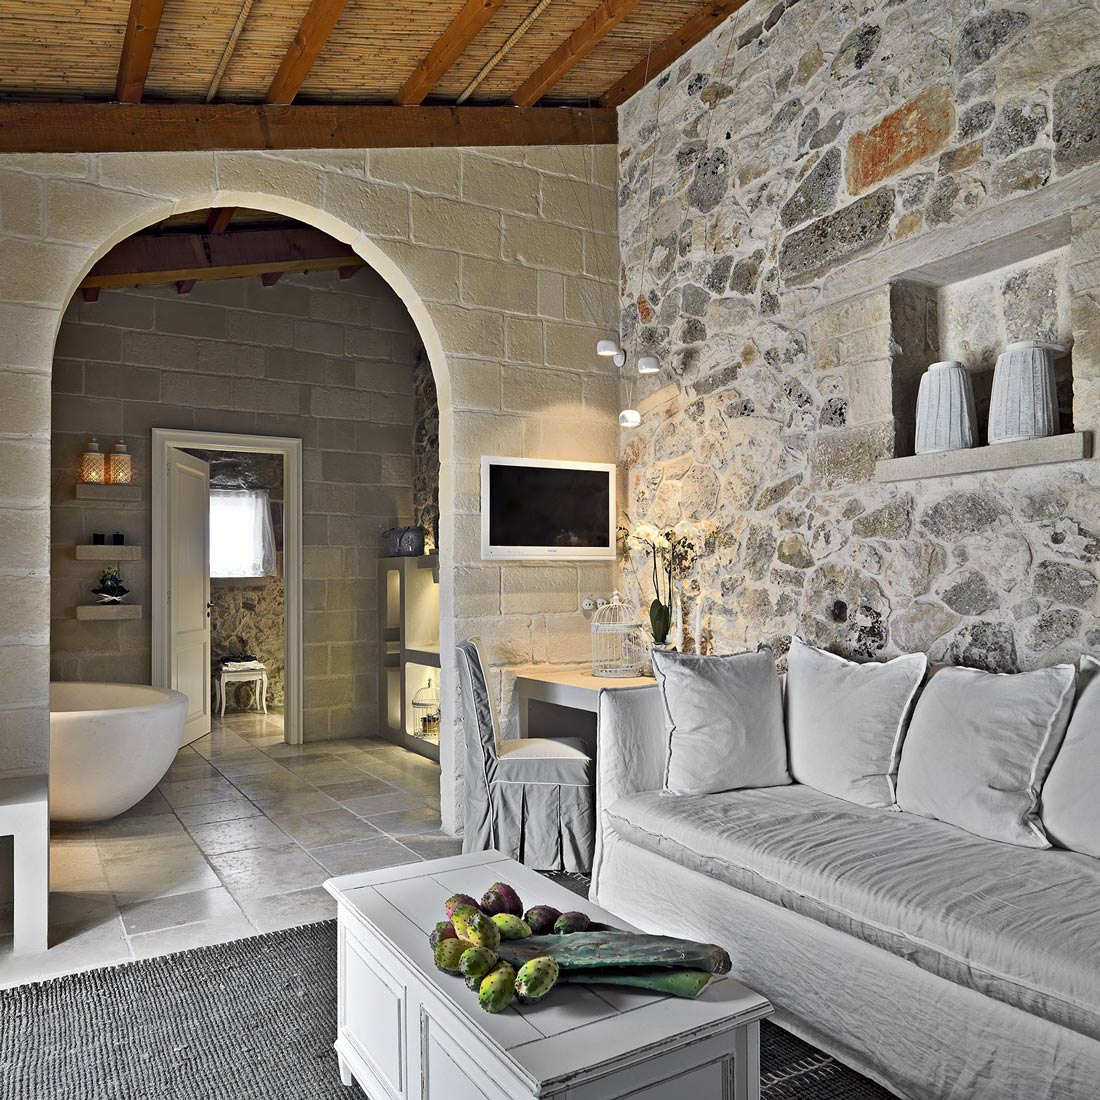 Sofa, Living Room, Relais Masseria Capasa Hotel in Martano, Italy